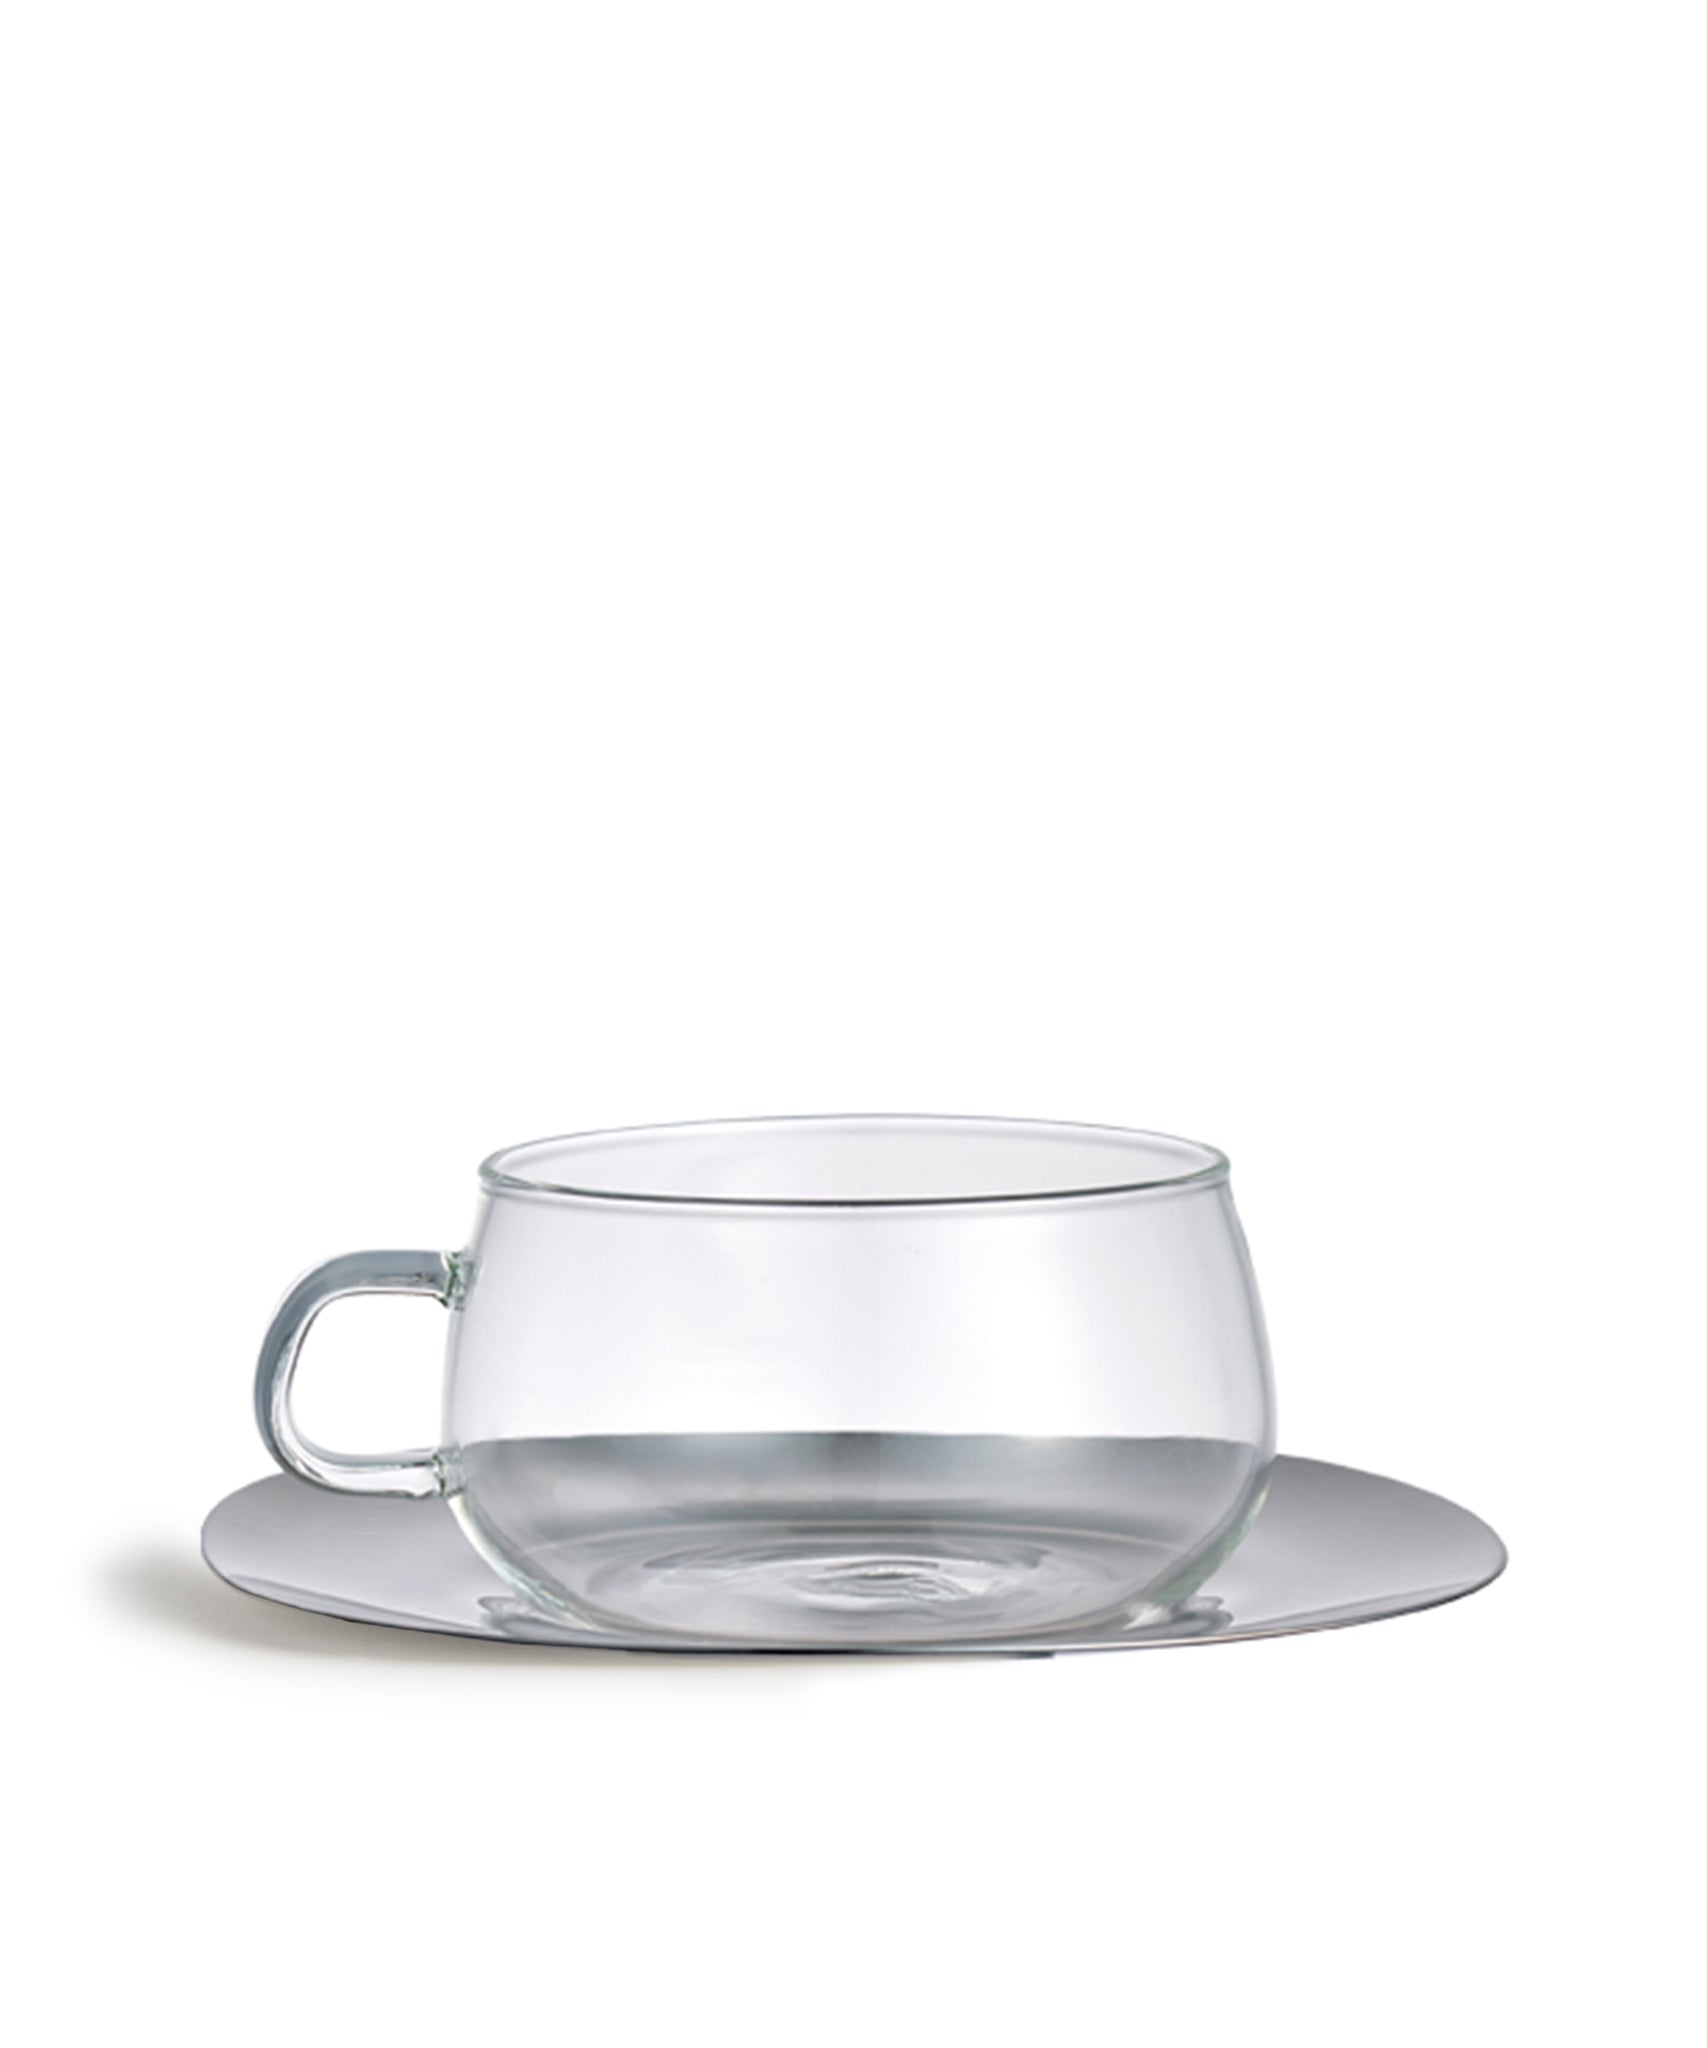 Unitea Cup & Saucer 230ml by Kinto